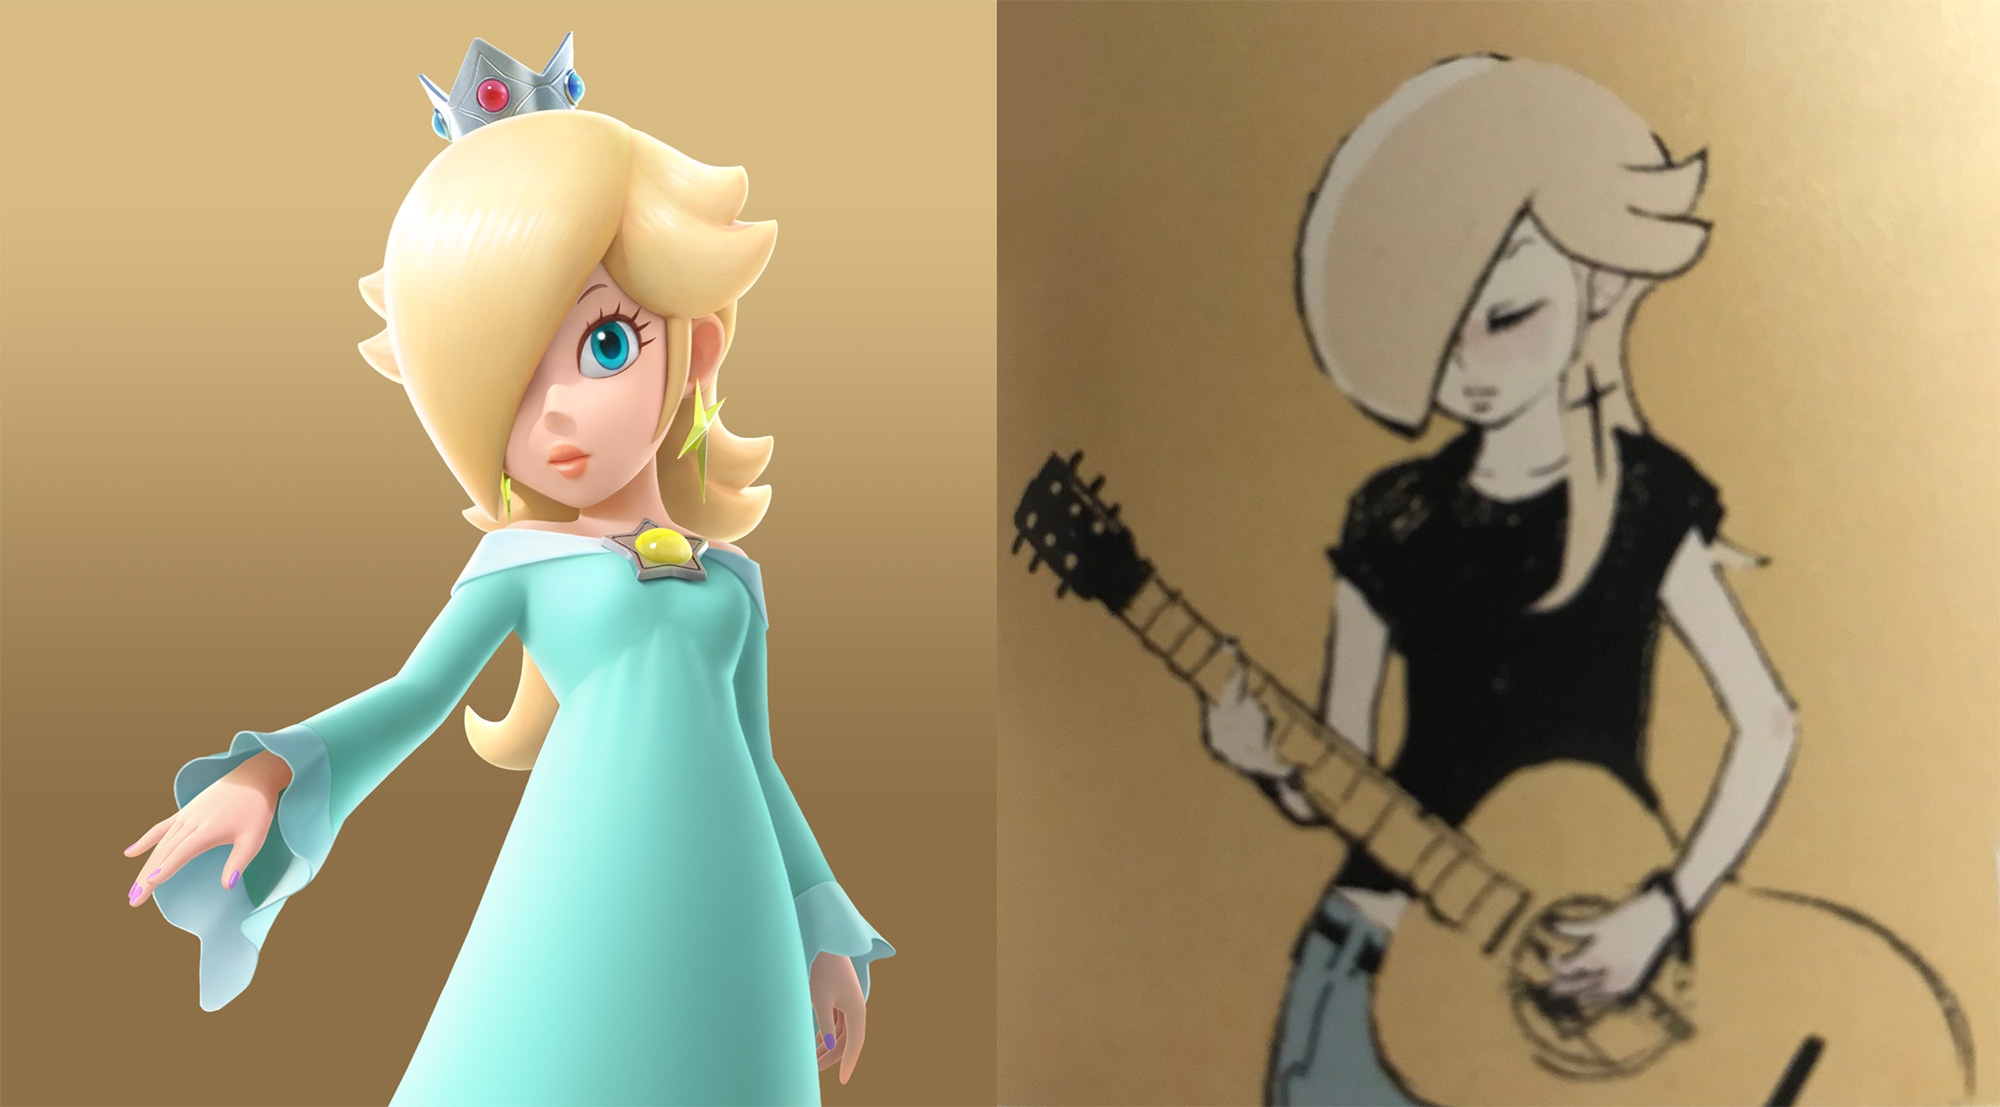 Side by side Rosalinas